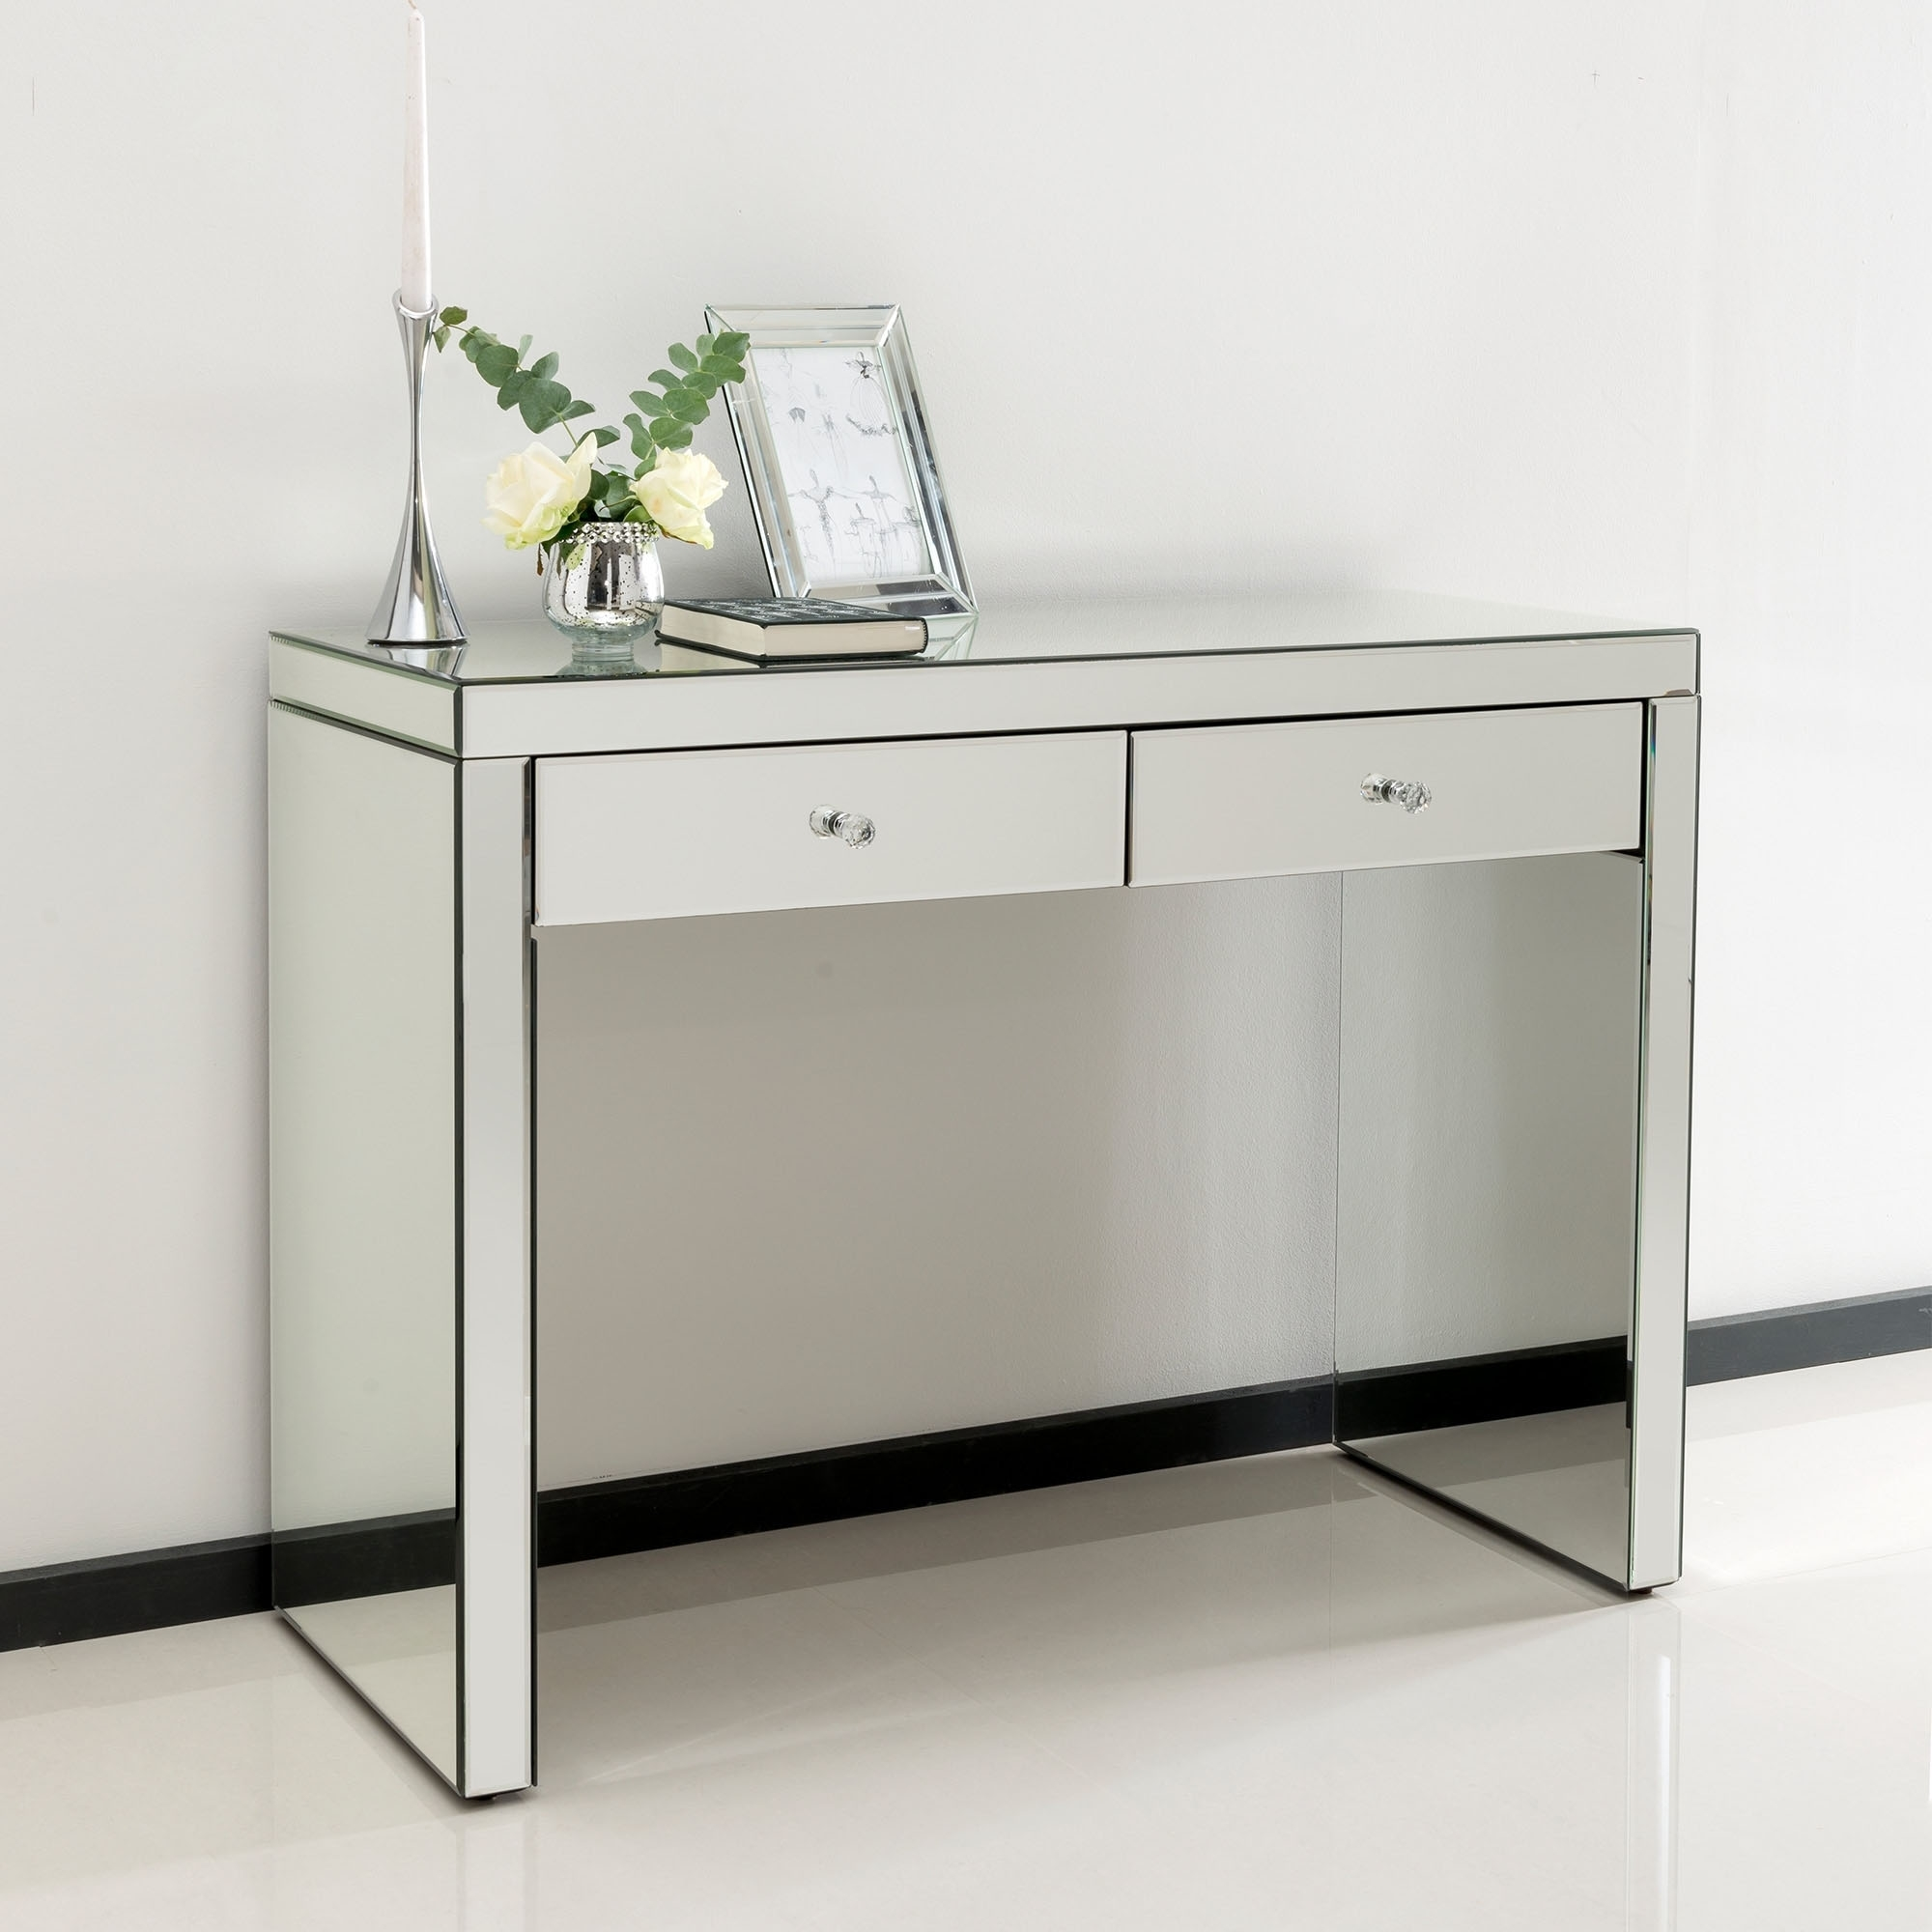 Interior full size of makeup storage:hooker furniture mirrored console table  sanctuary four door kzolphm